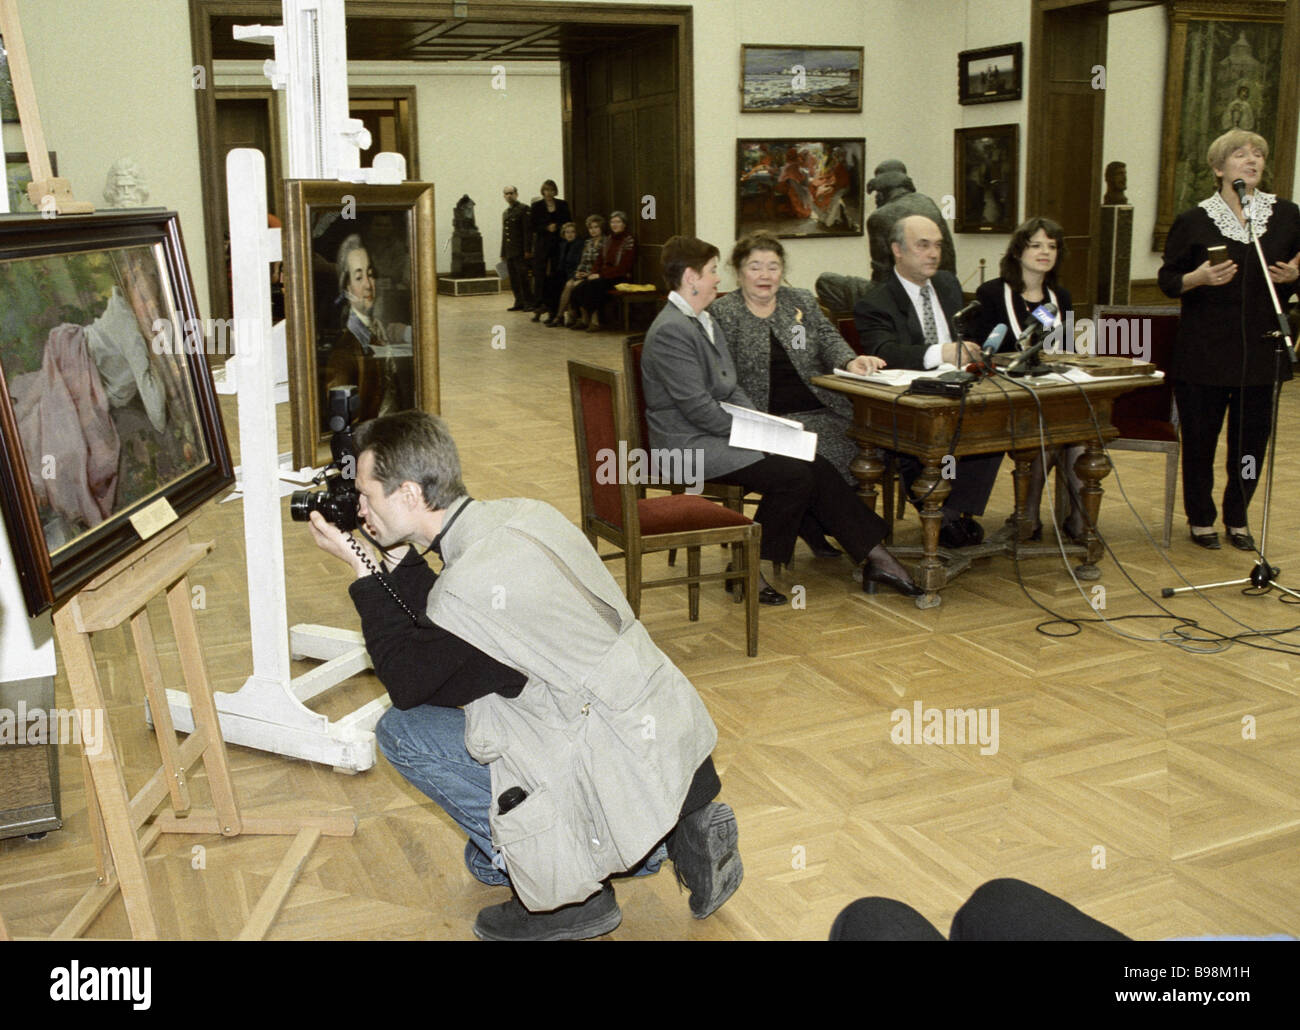 Presentation of Russian classic art works bought by the Tretyakov State Gallery in 1998 1999 - Stock Image